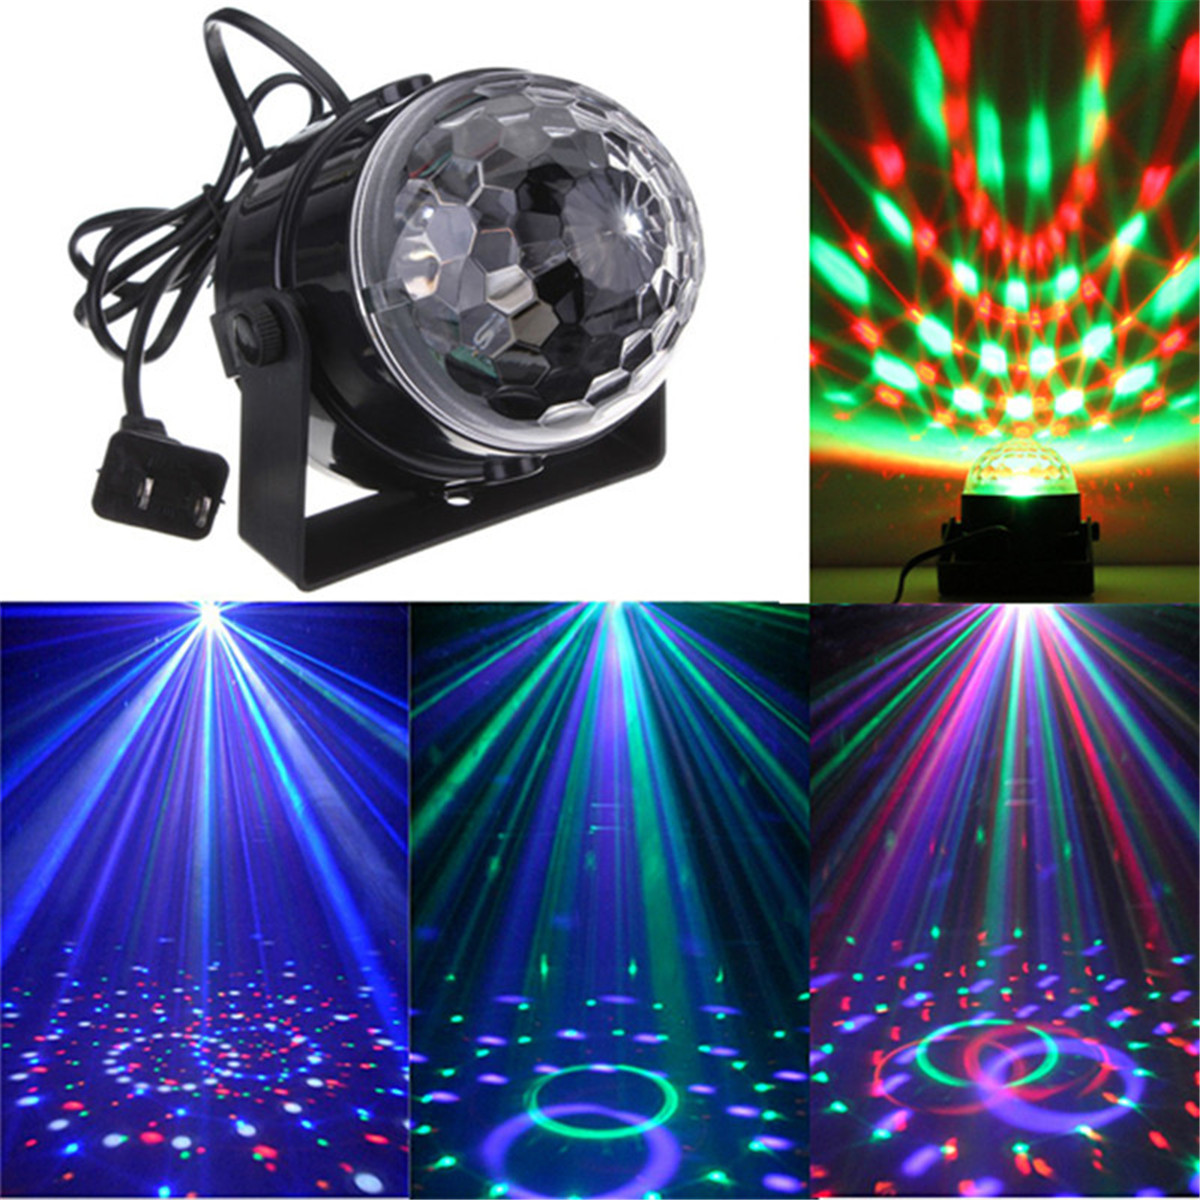 Smuxi 5W Voice Control Automatic RGB Mini LED Crystal Magic Ball Stage Effect Lighting Lamp For KTV Party Disco Club DJ Light тепловая завеса royal thermo rta т9 page 8